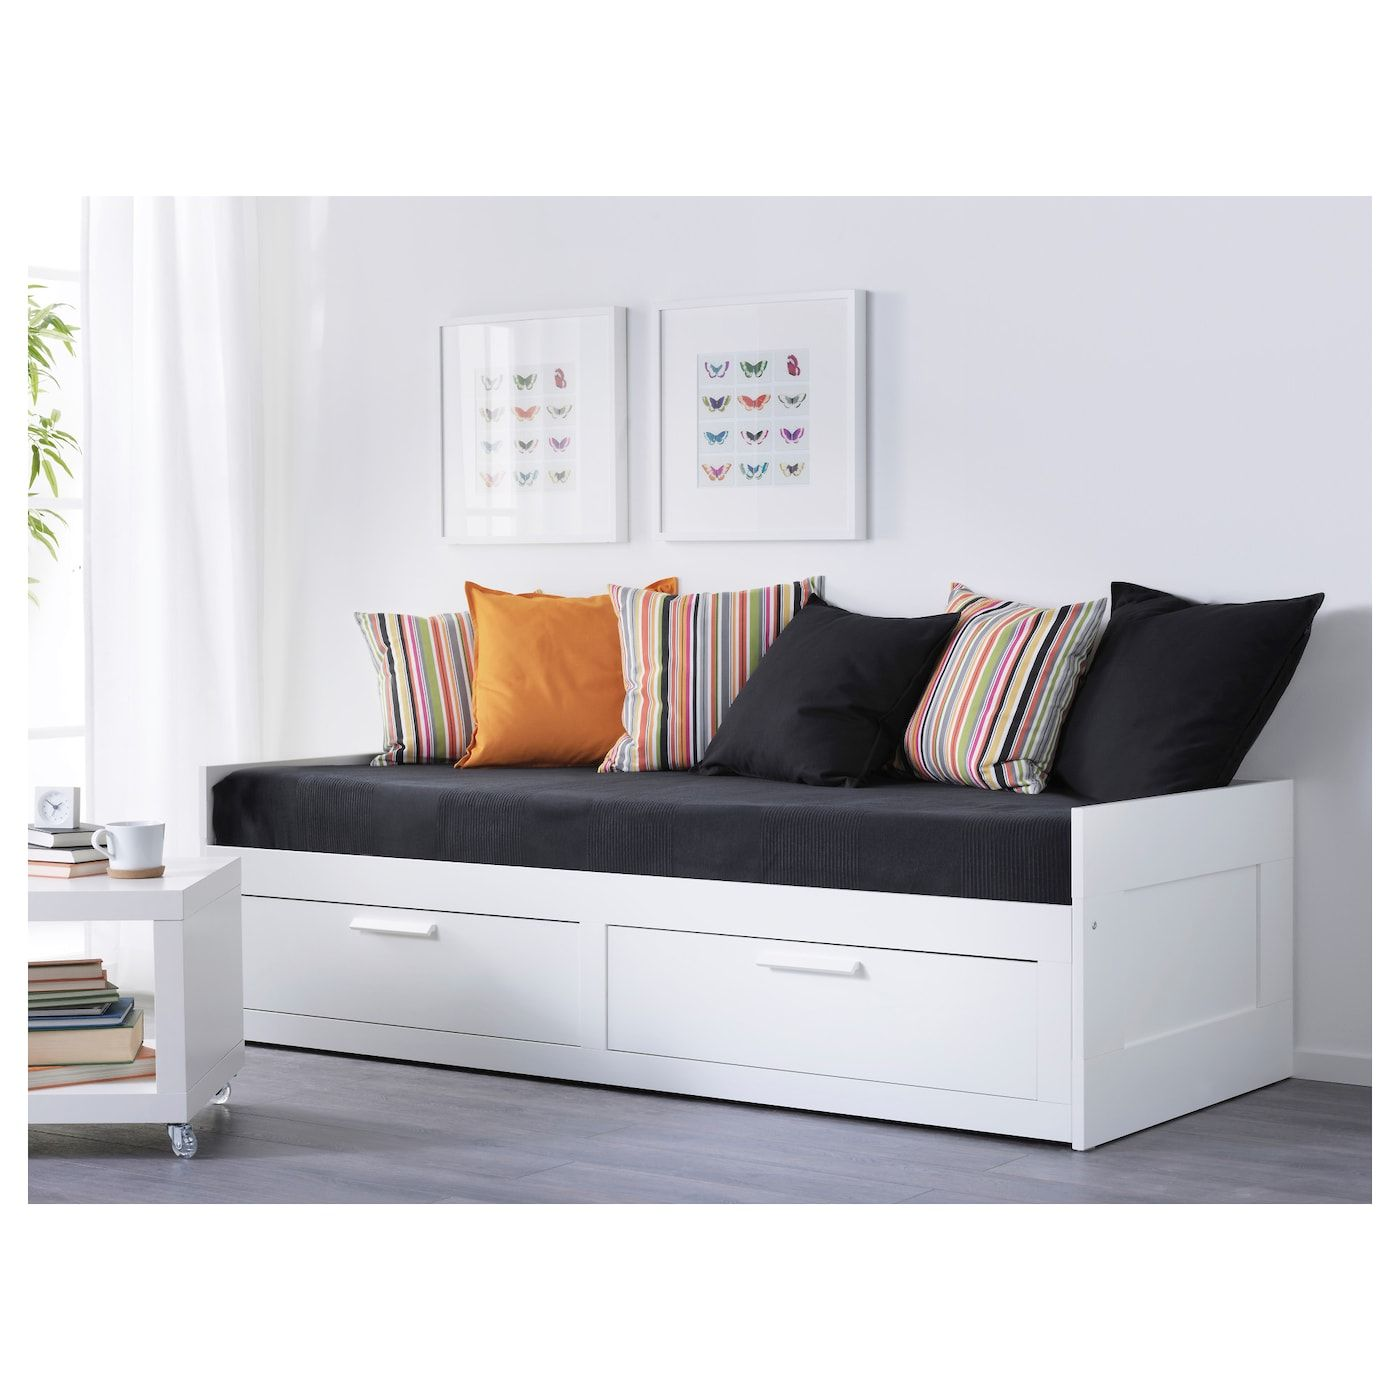 Brimnes Daybed Frame With 2 Drawers White Twin Day Bed Frame